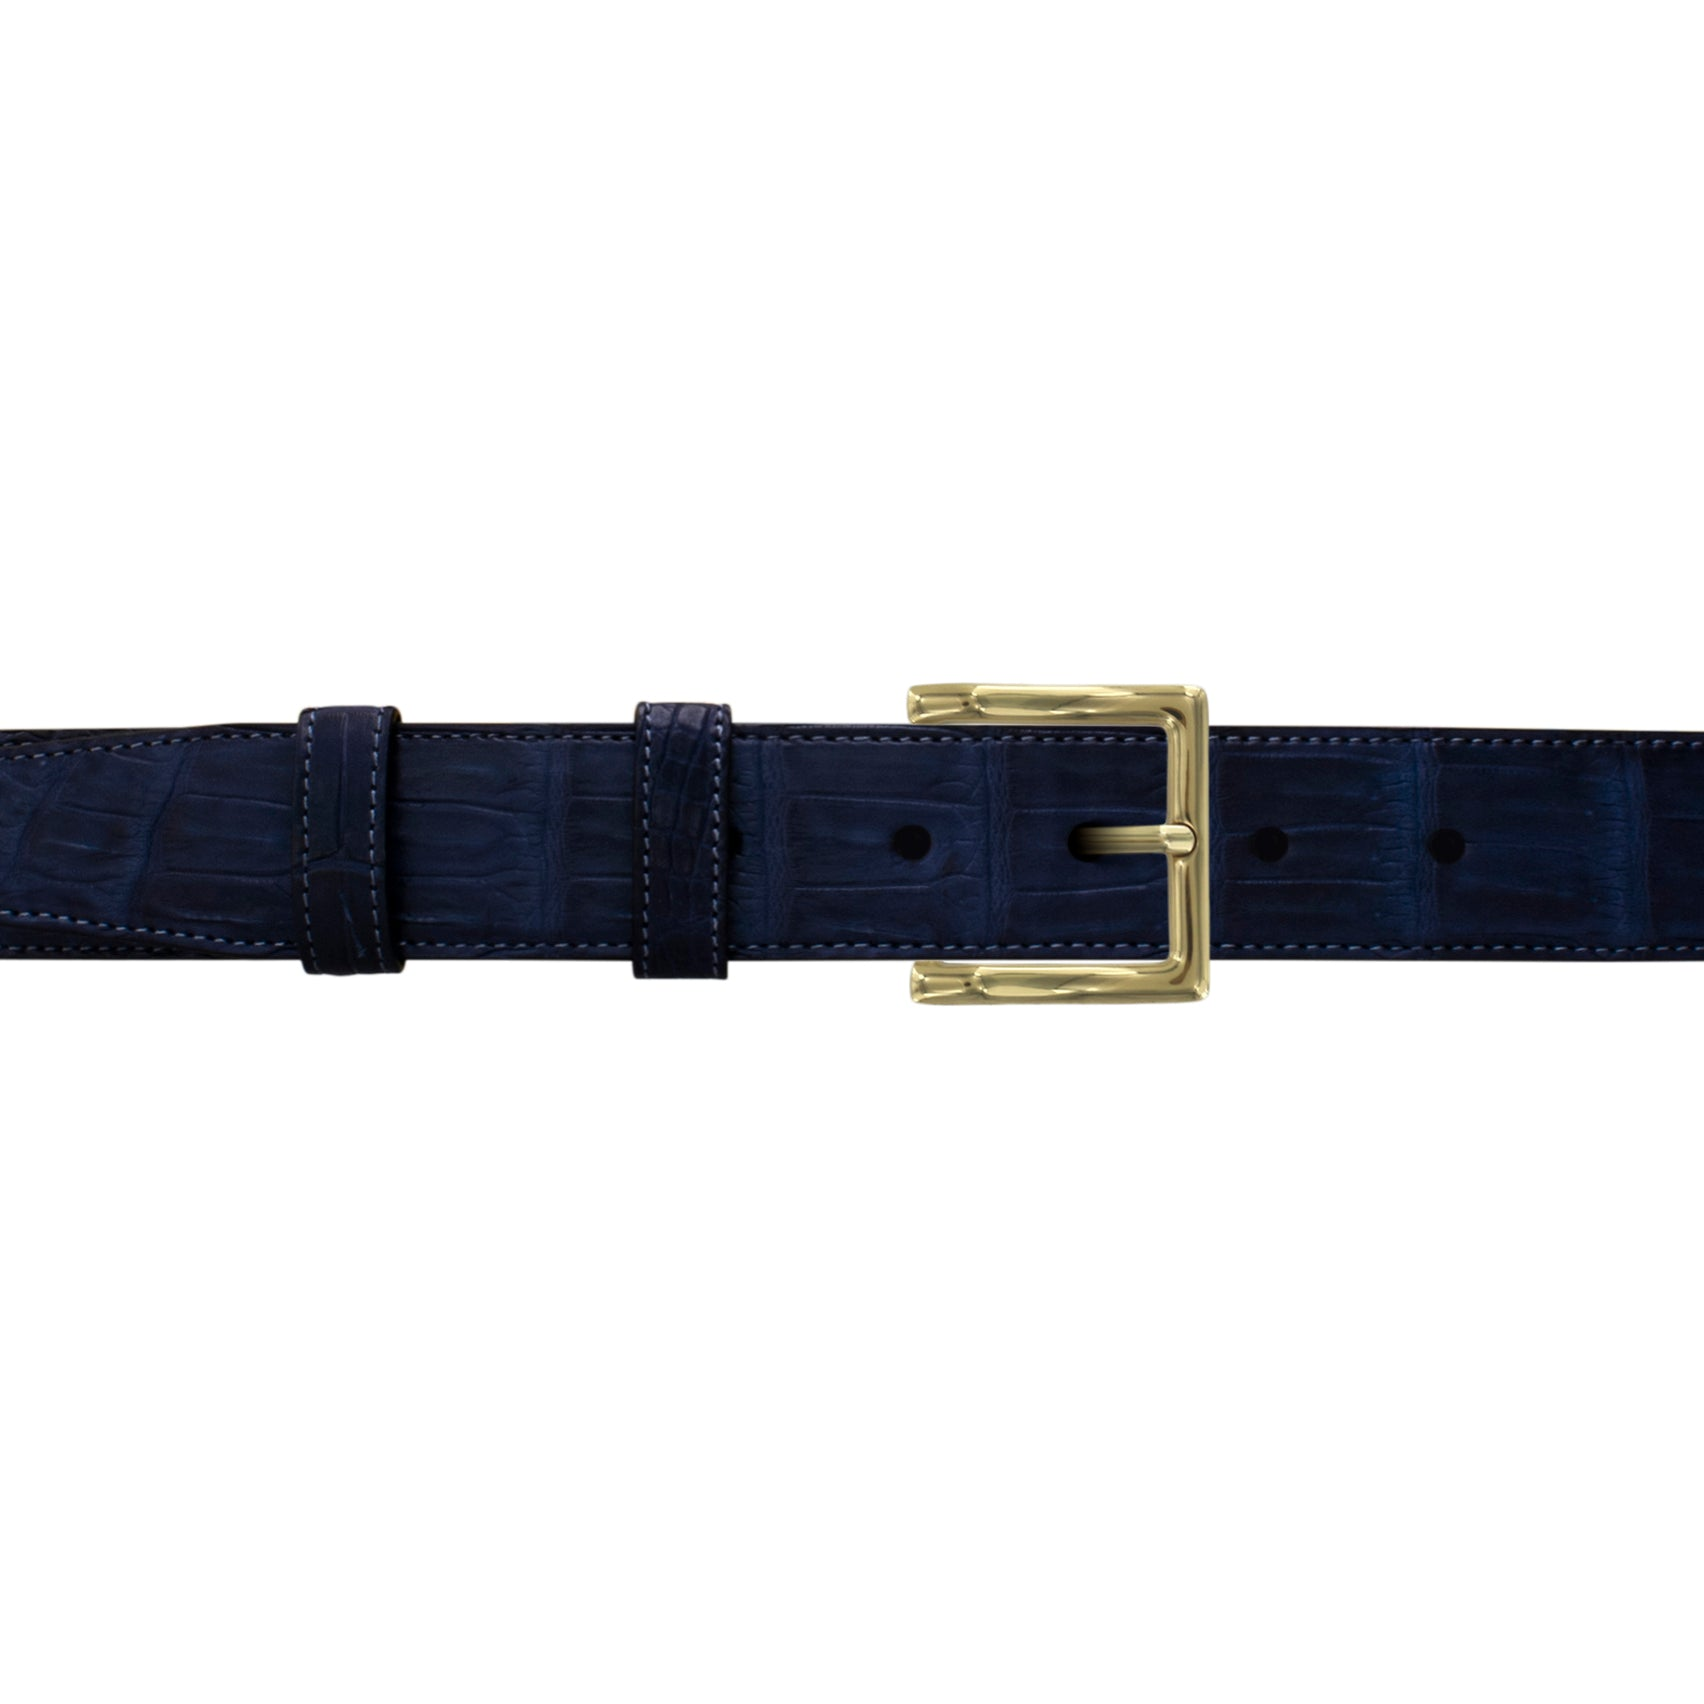 "1 1/4"" Midnight Classic Belt with Regis Dress Buckle in Brass"